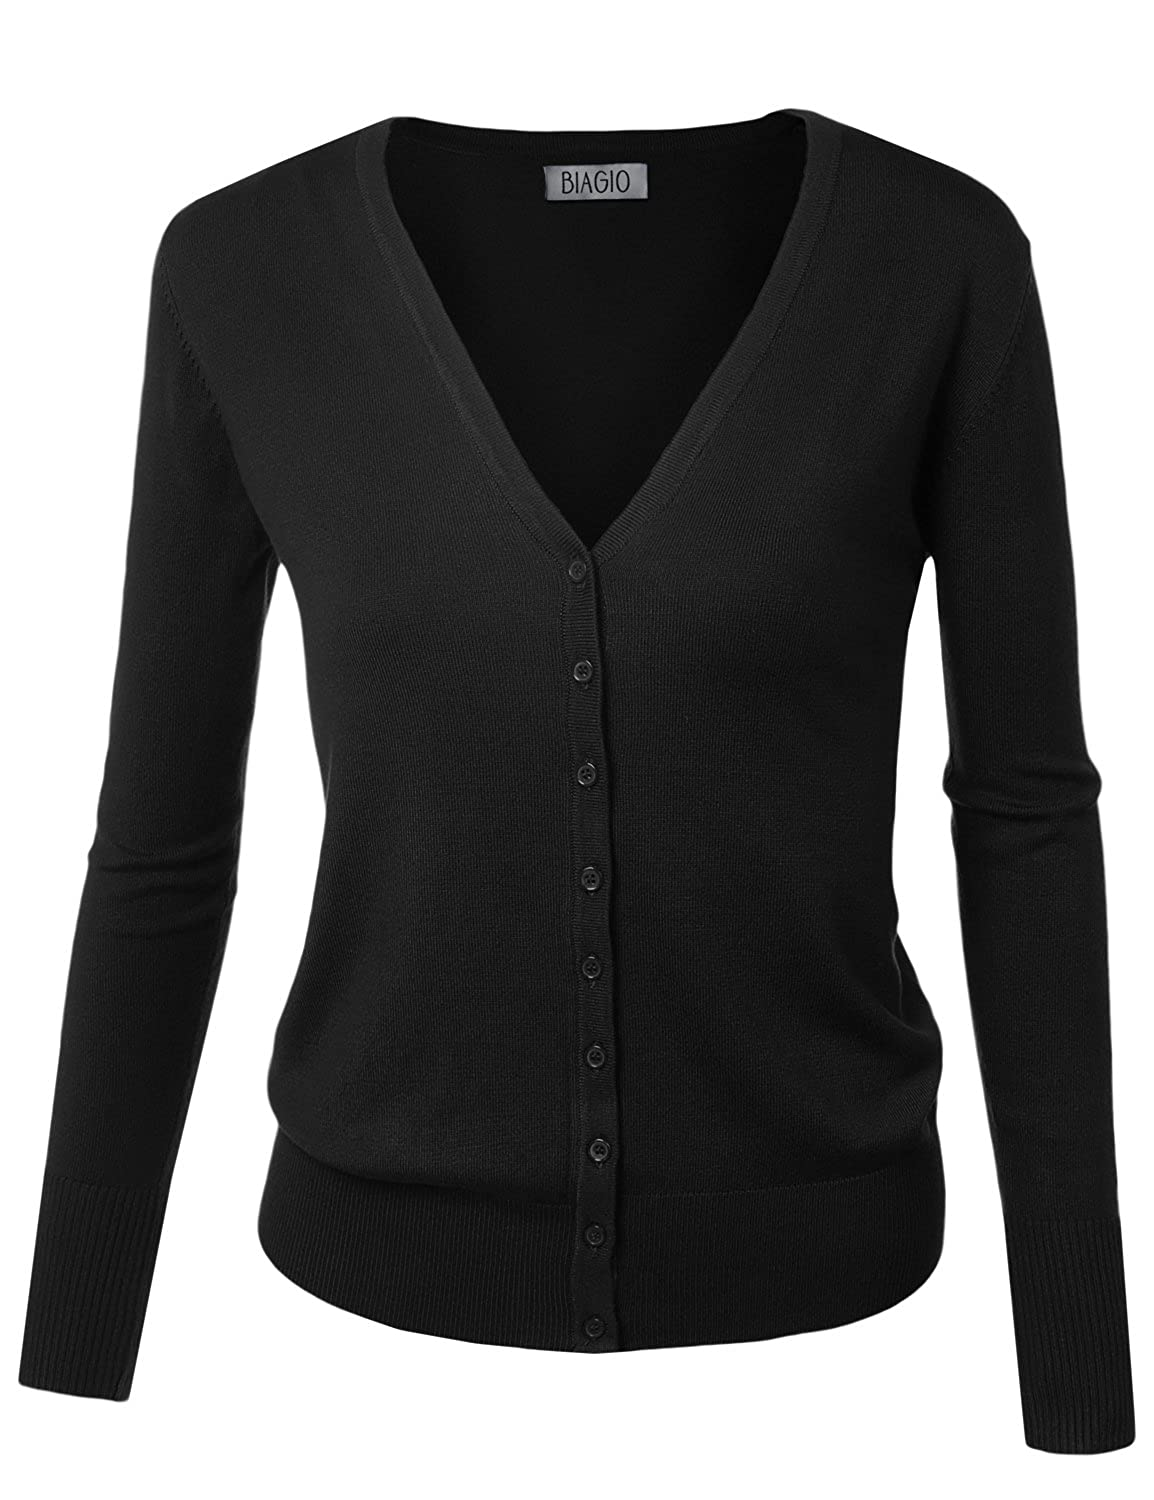 FLORIA Women Button Down Crew Neck Long Sleeve Soft Knit Cardigan ...